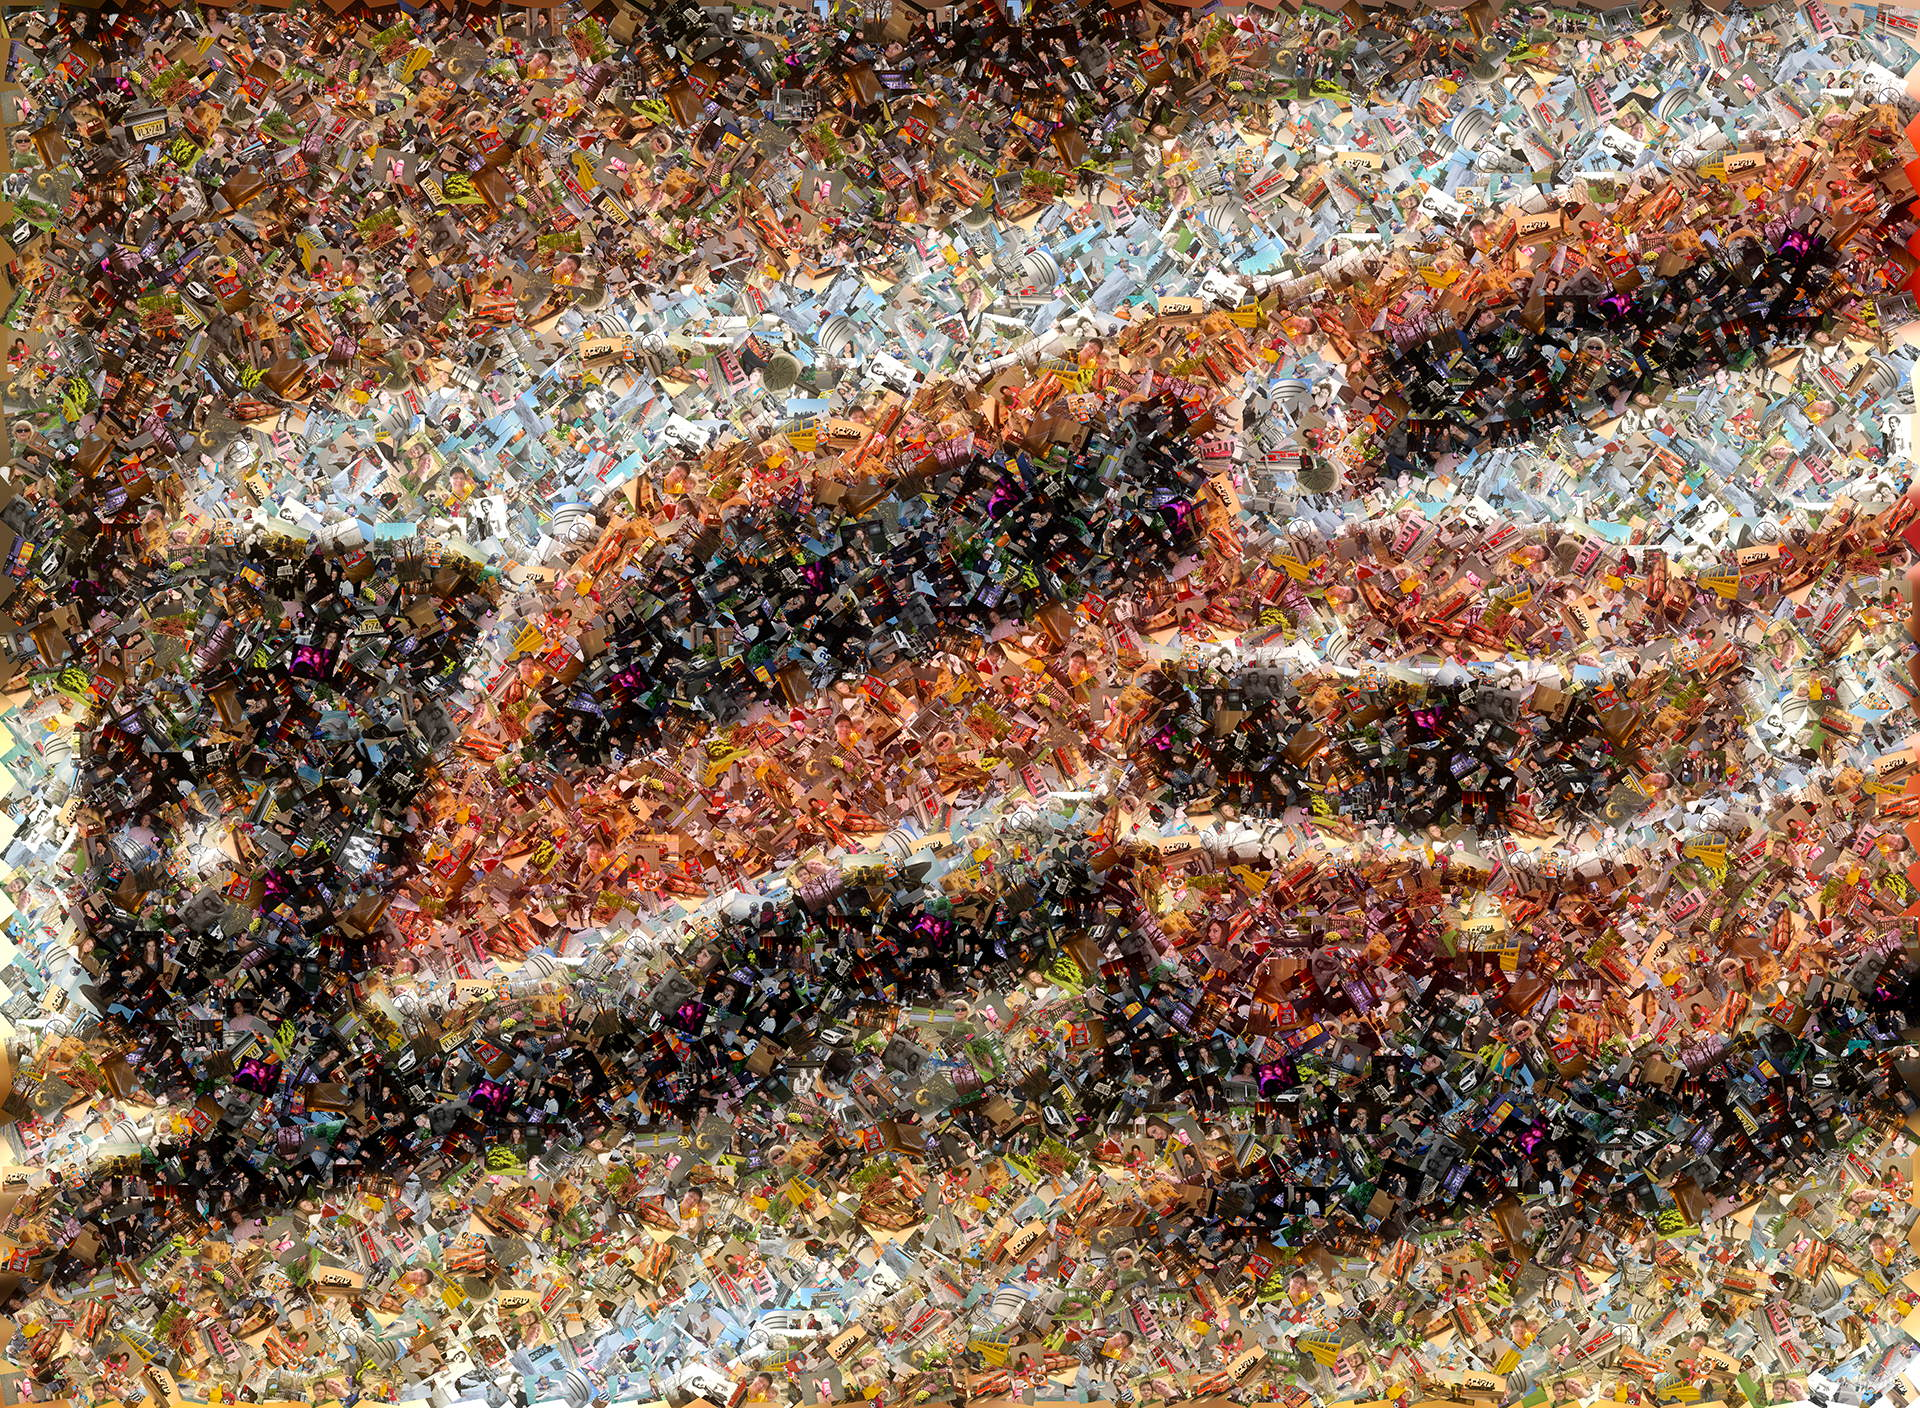 photo mosaic This scatter mosaic of an antique train toy set was created using 136 photos